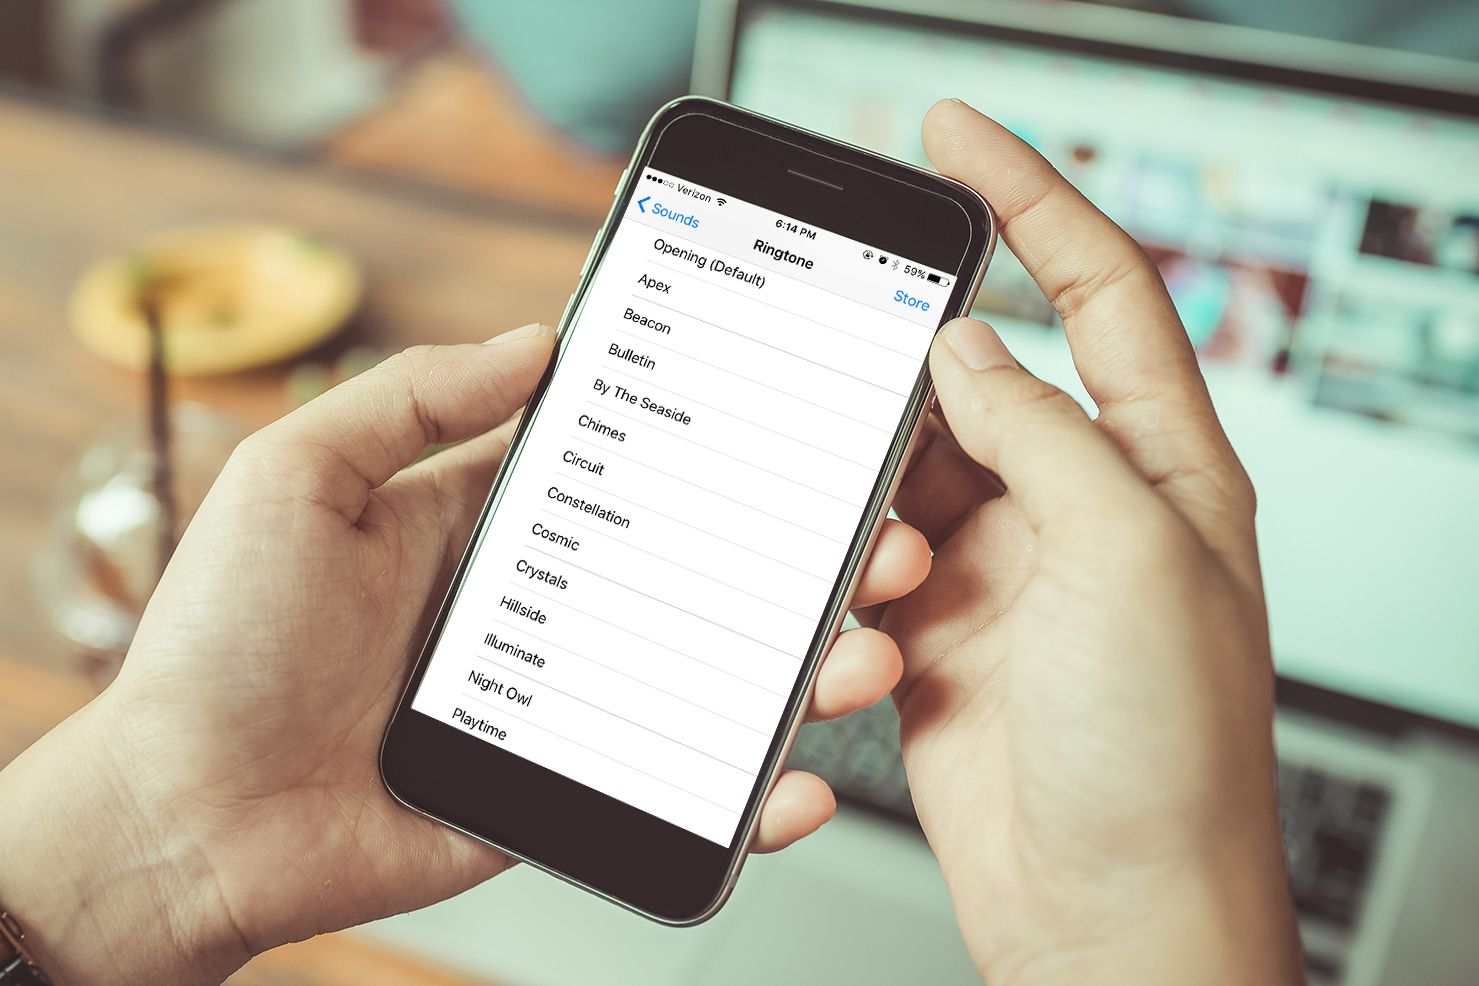 How To Change The Default Ringtone On Your Iphone